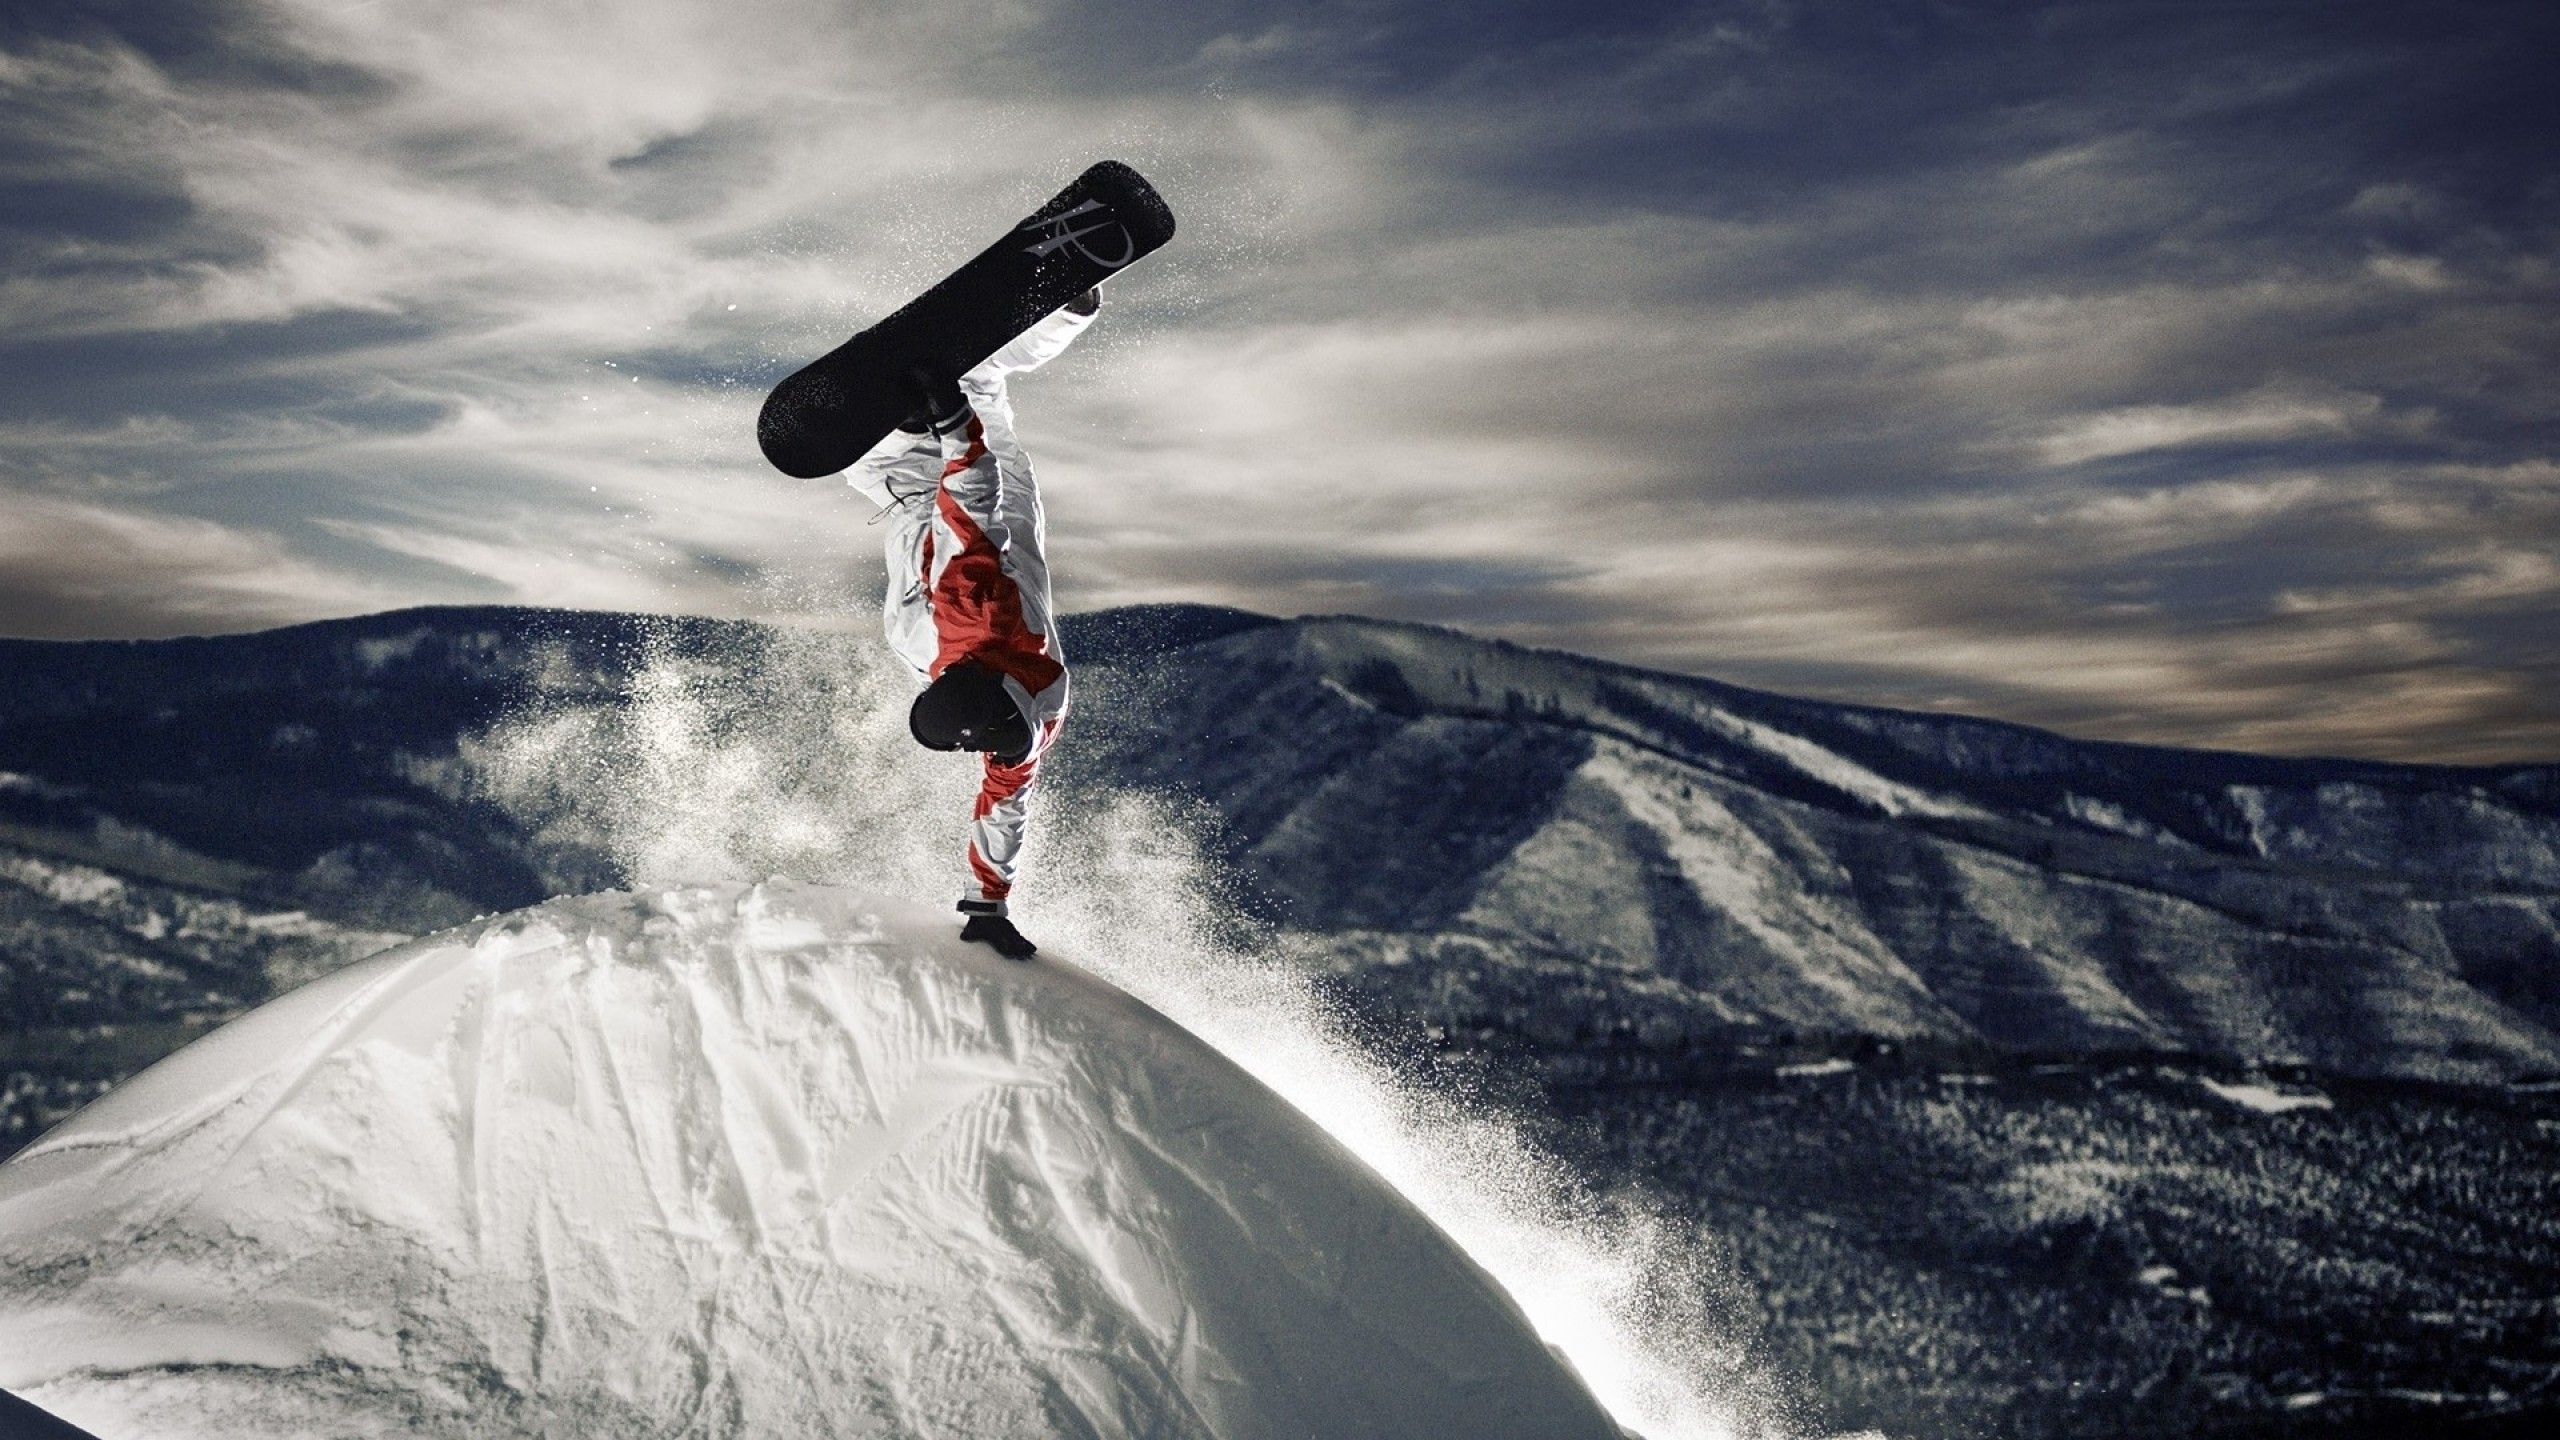 2560x1440 - Snowboarding Wallpapers 10